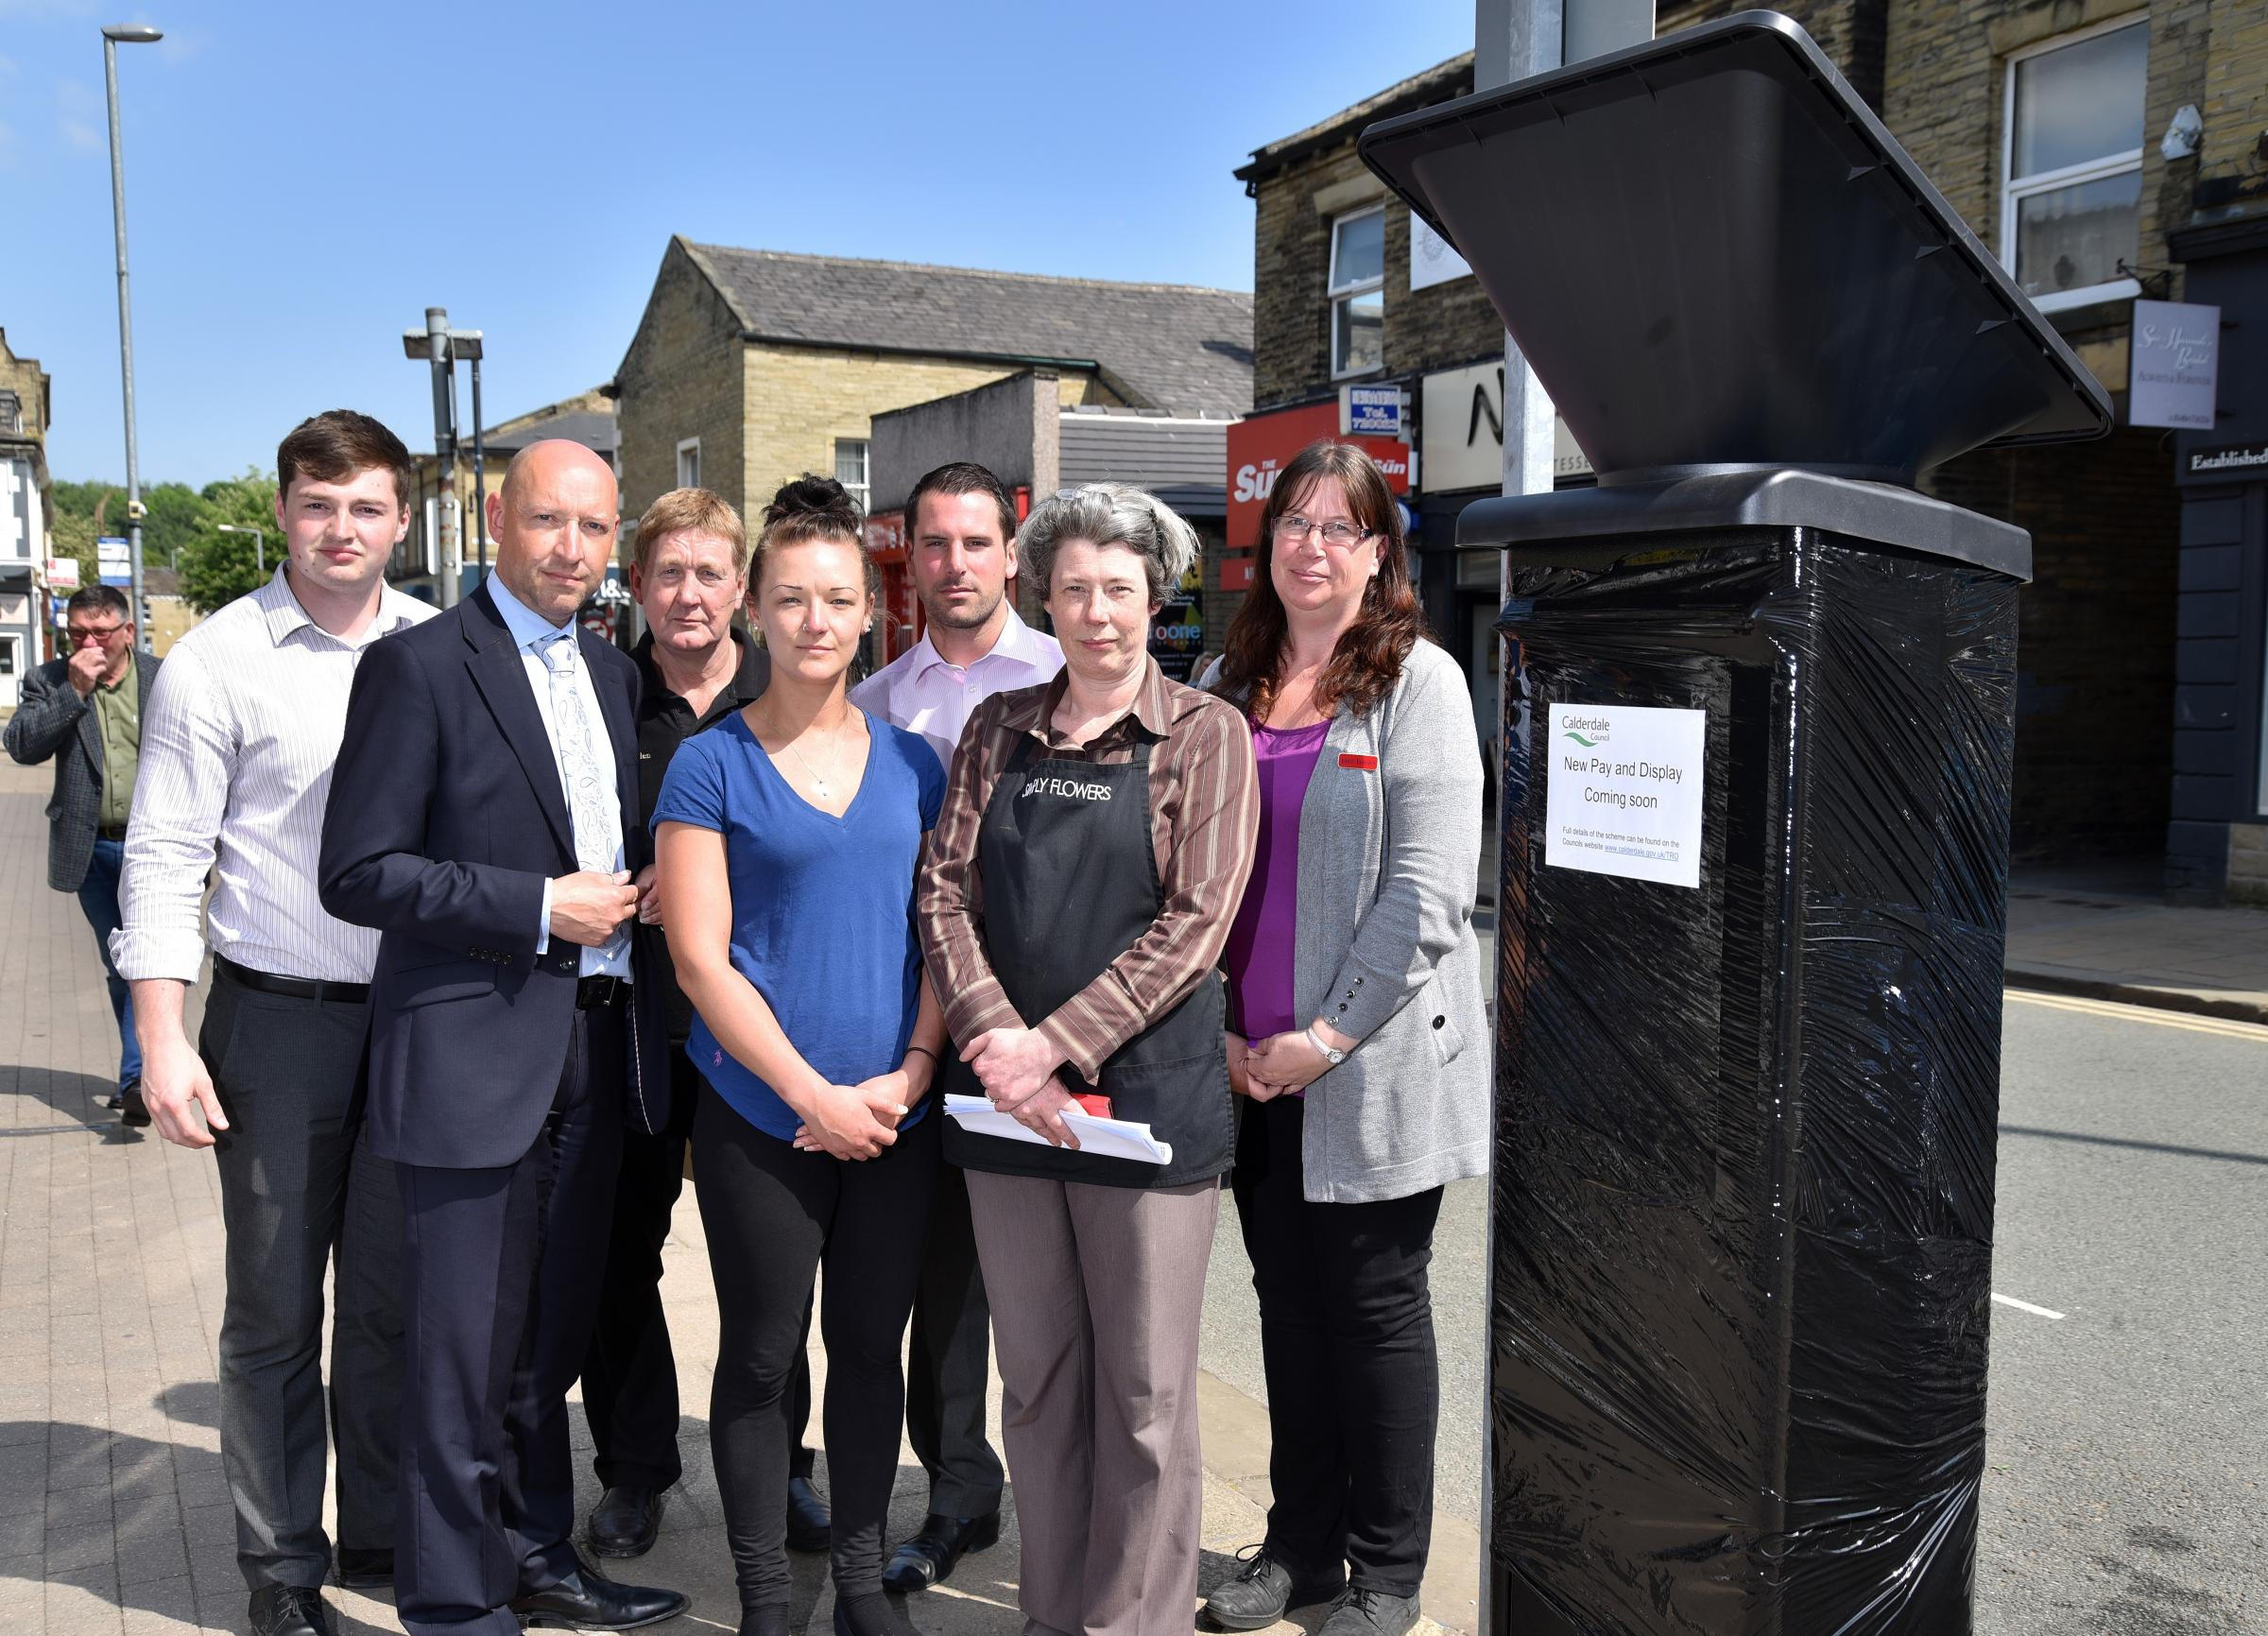 METERS: Cllr Scott Benton and traders in Brighouse are concerned about the introduction of parking charges